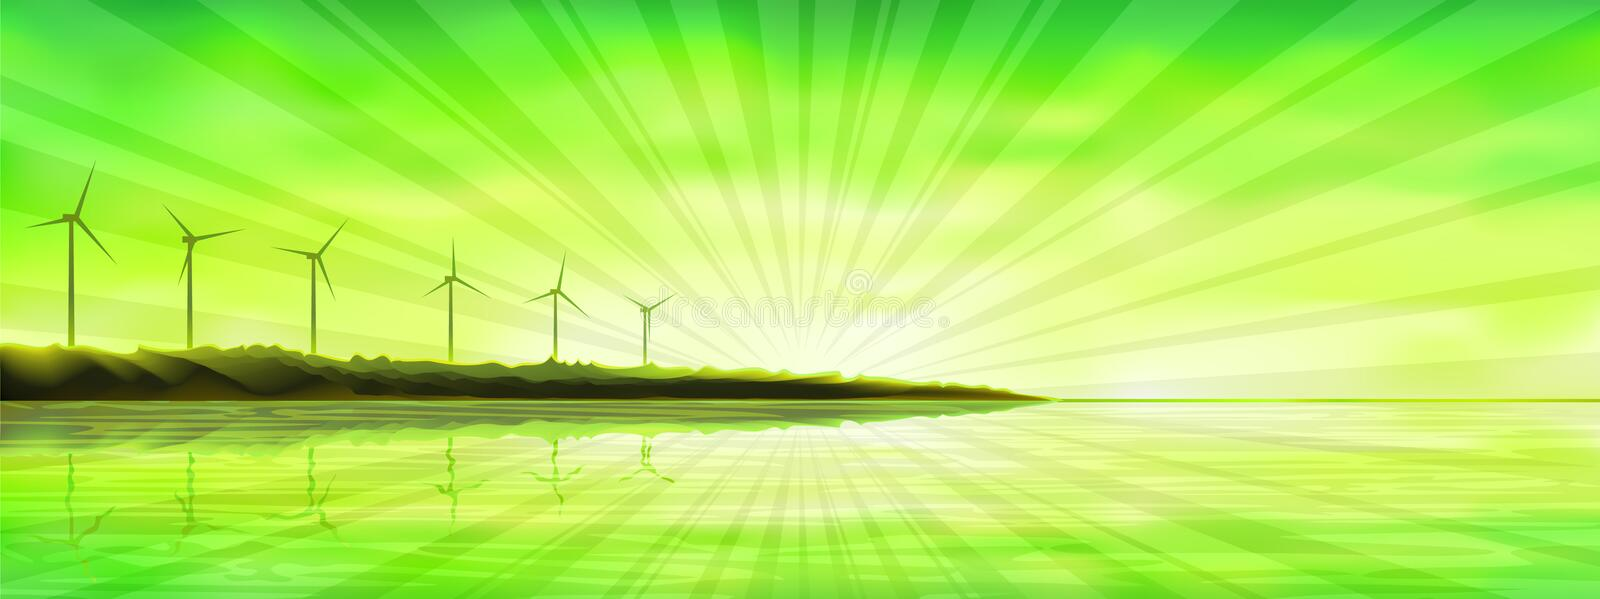 Sunset over an ocean island with wind turbines royalty free illustration